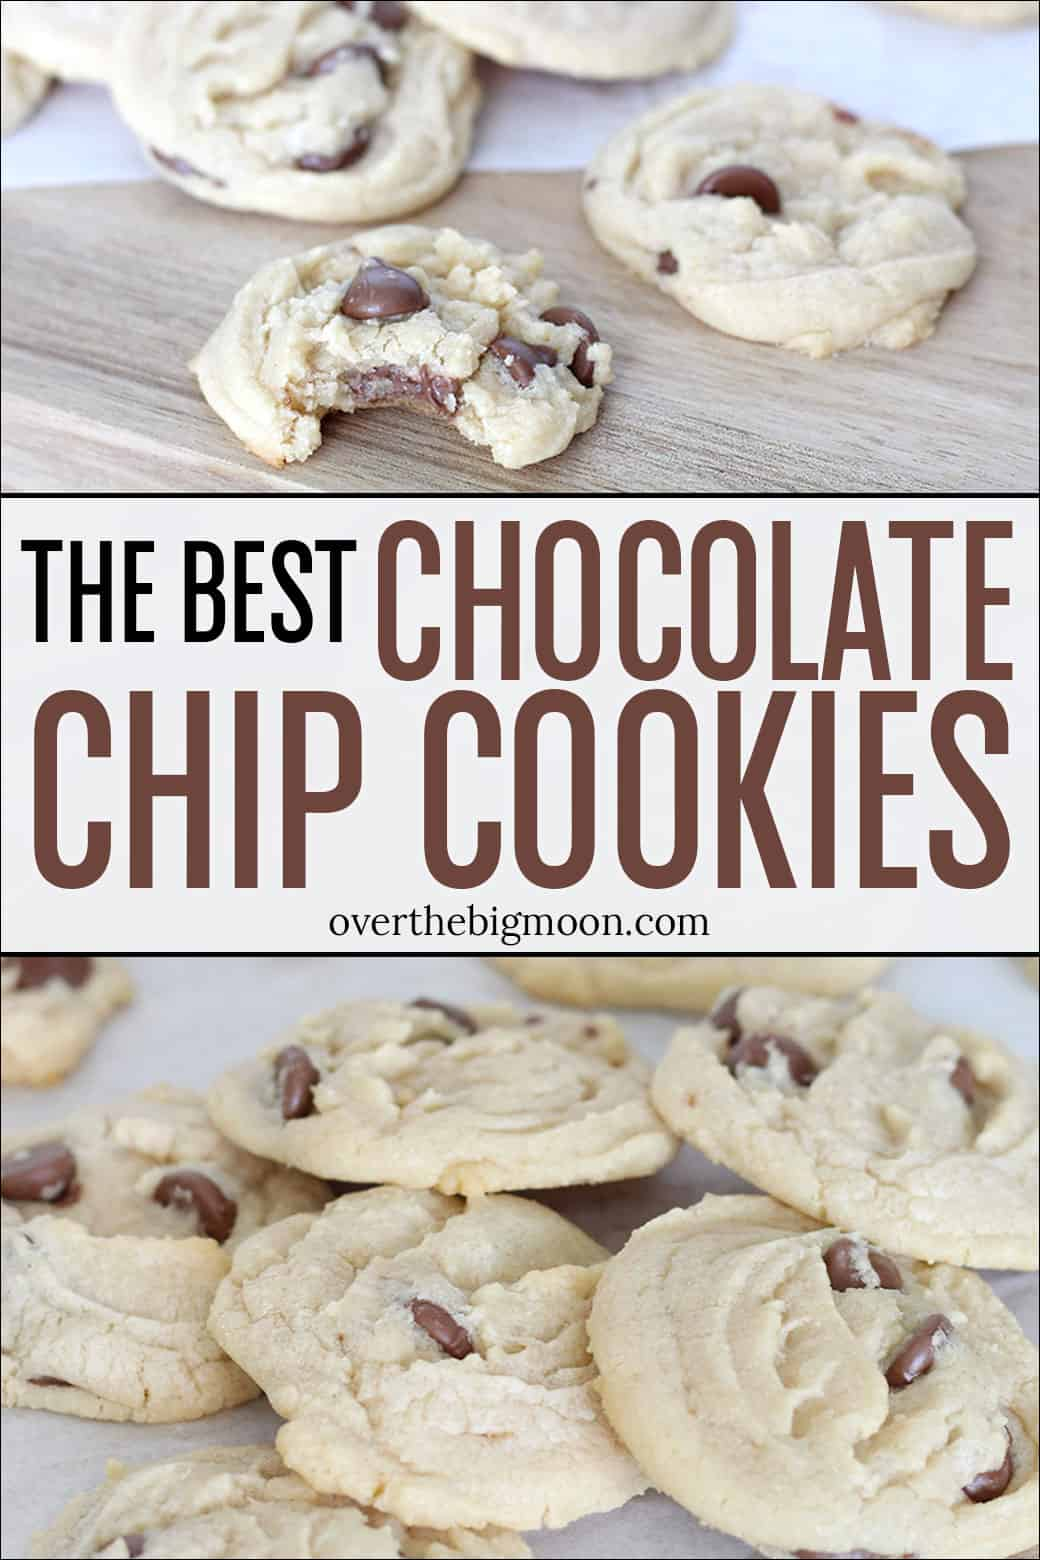 The ALL TIME Best Chocolate Chip Cookies! These are so light and fluffy! You'll never need another Chocolate Chip Cookie recipe again! From overthebigmoon.com!